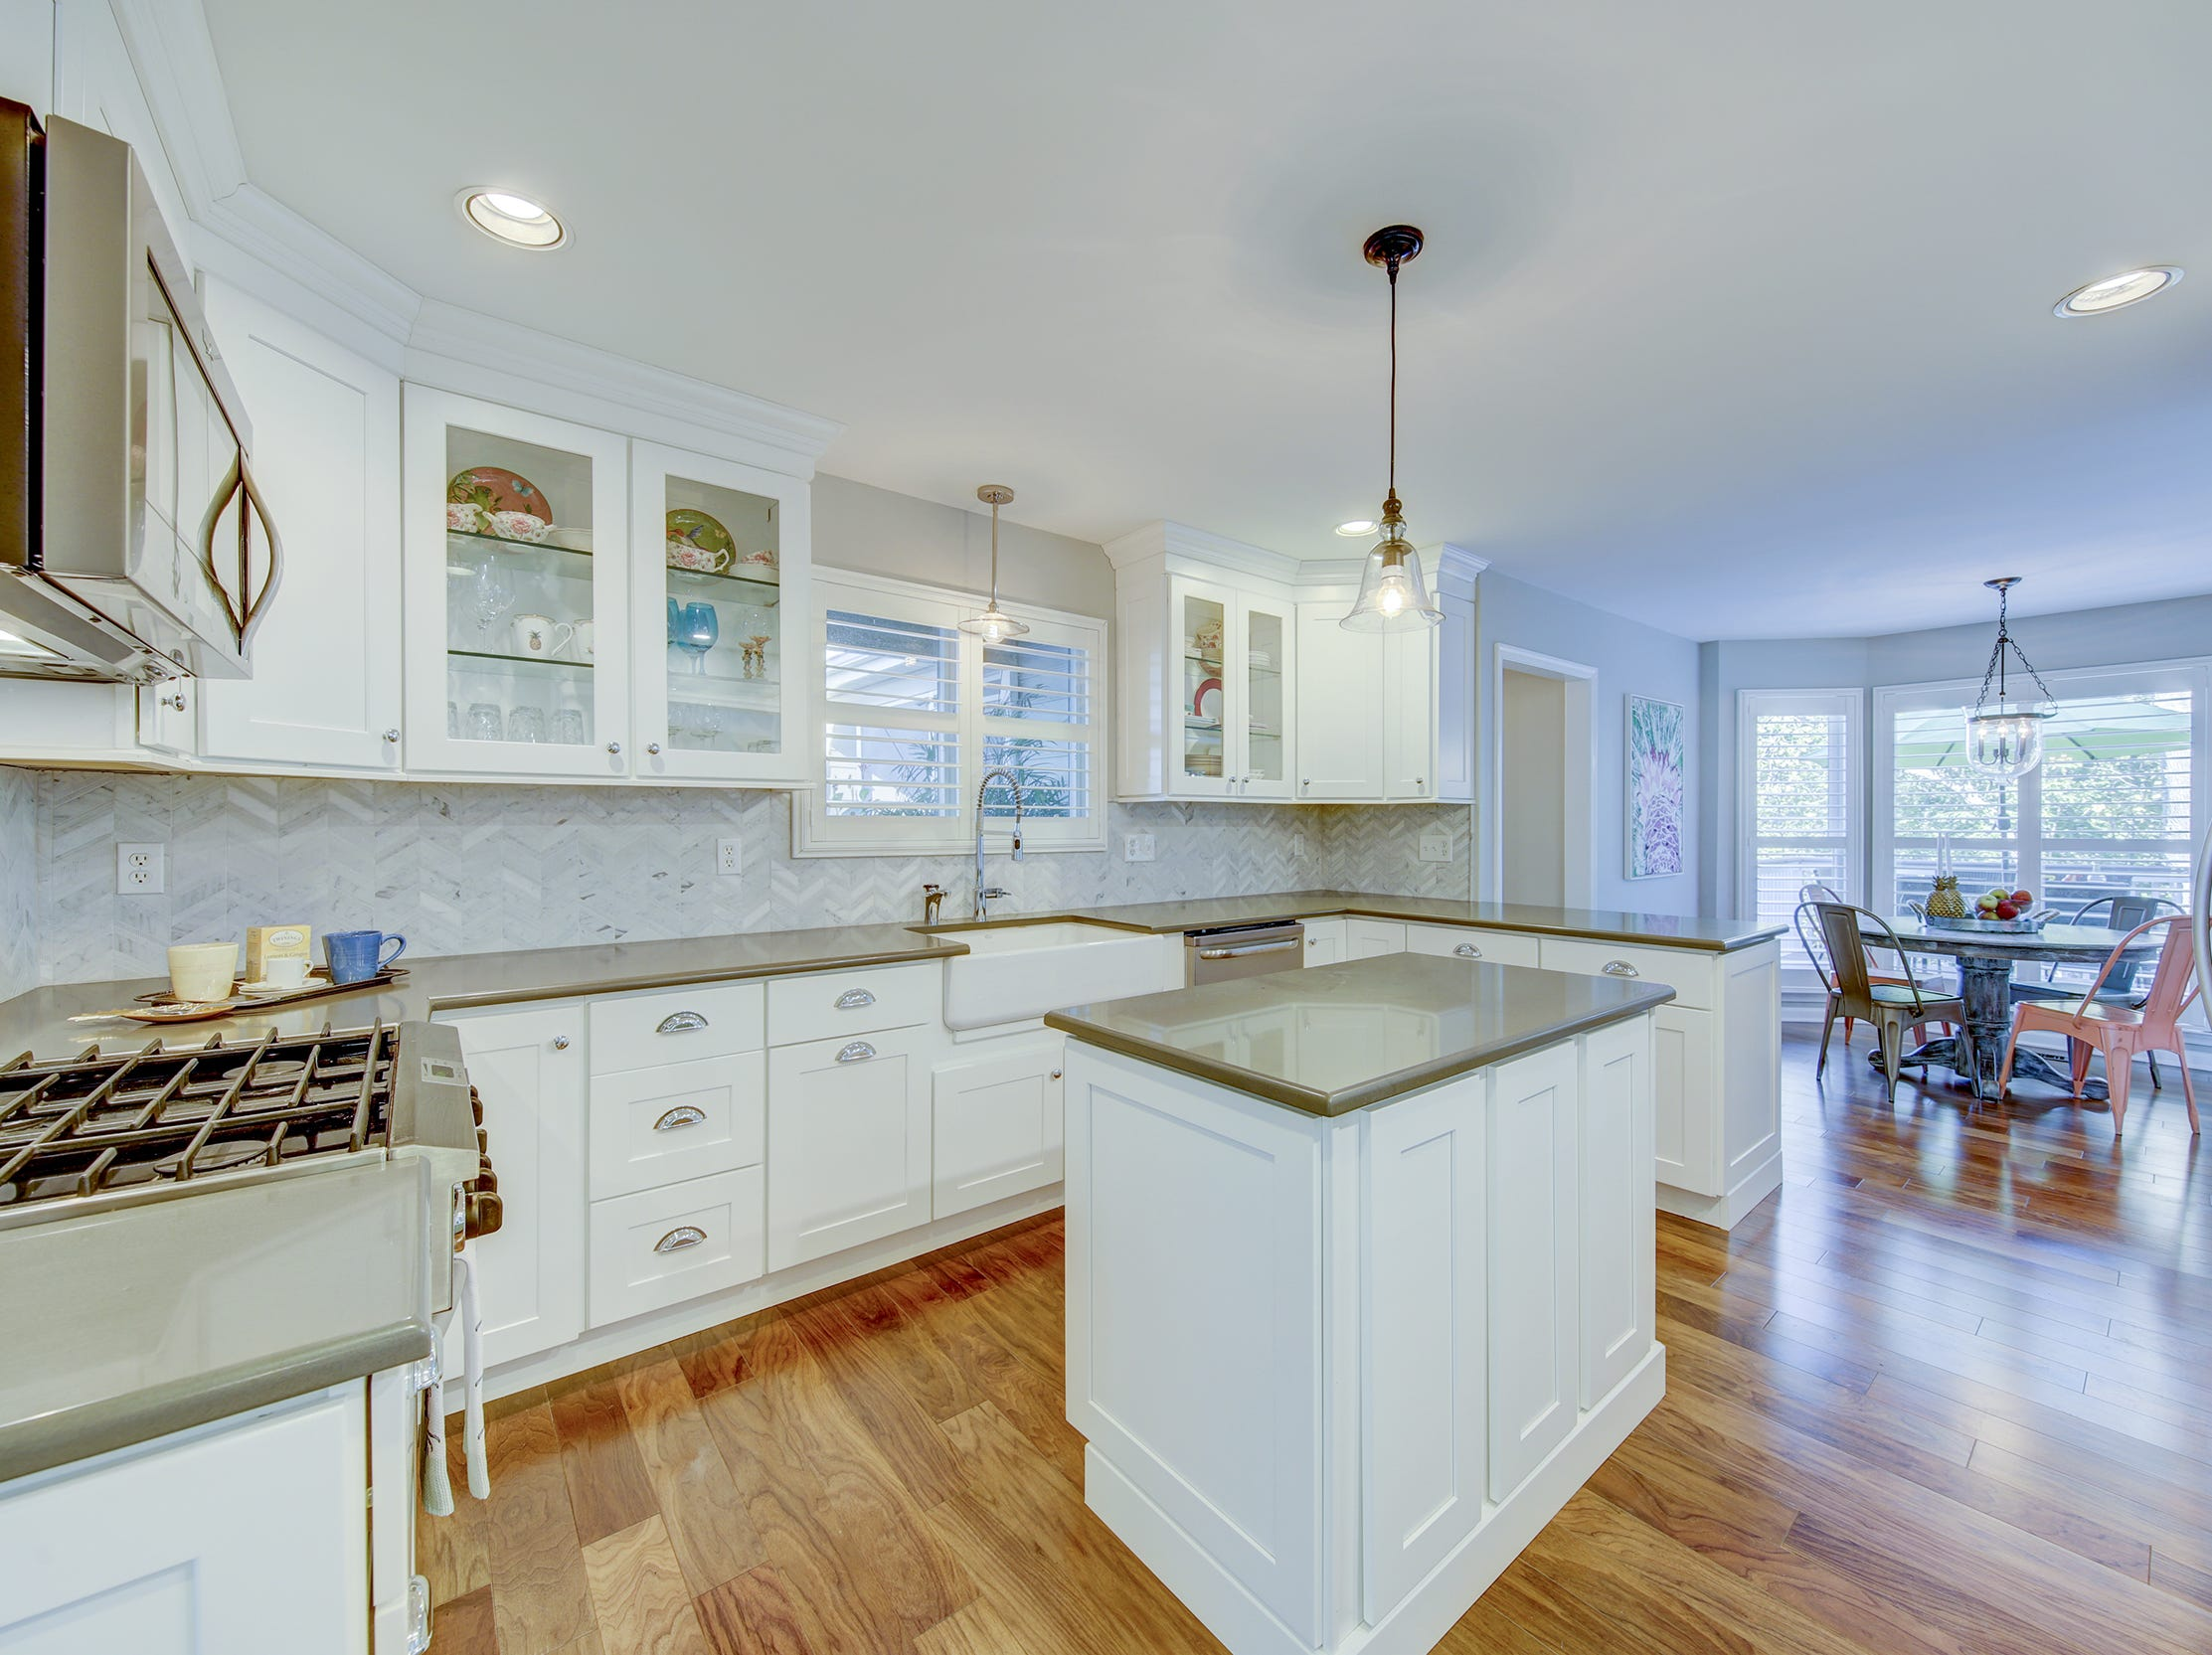 The chef's kitchen at 204 Lakeview Shores has white custom cabinets and quartz countertops.